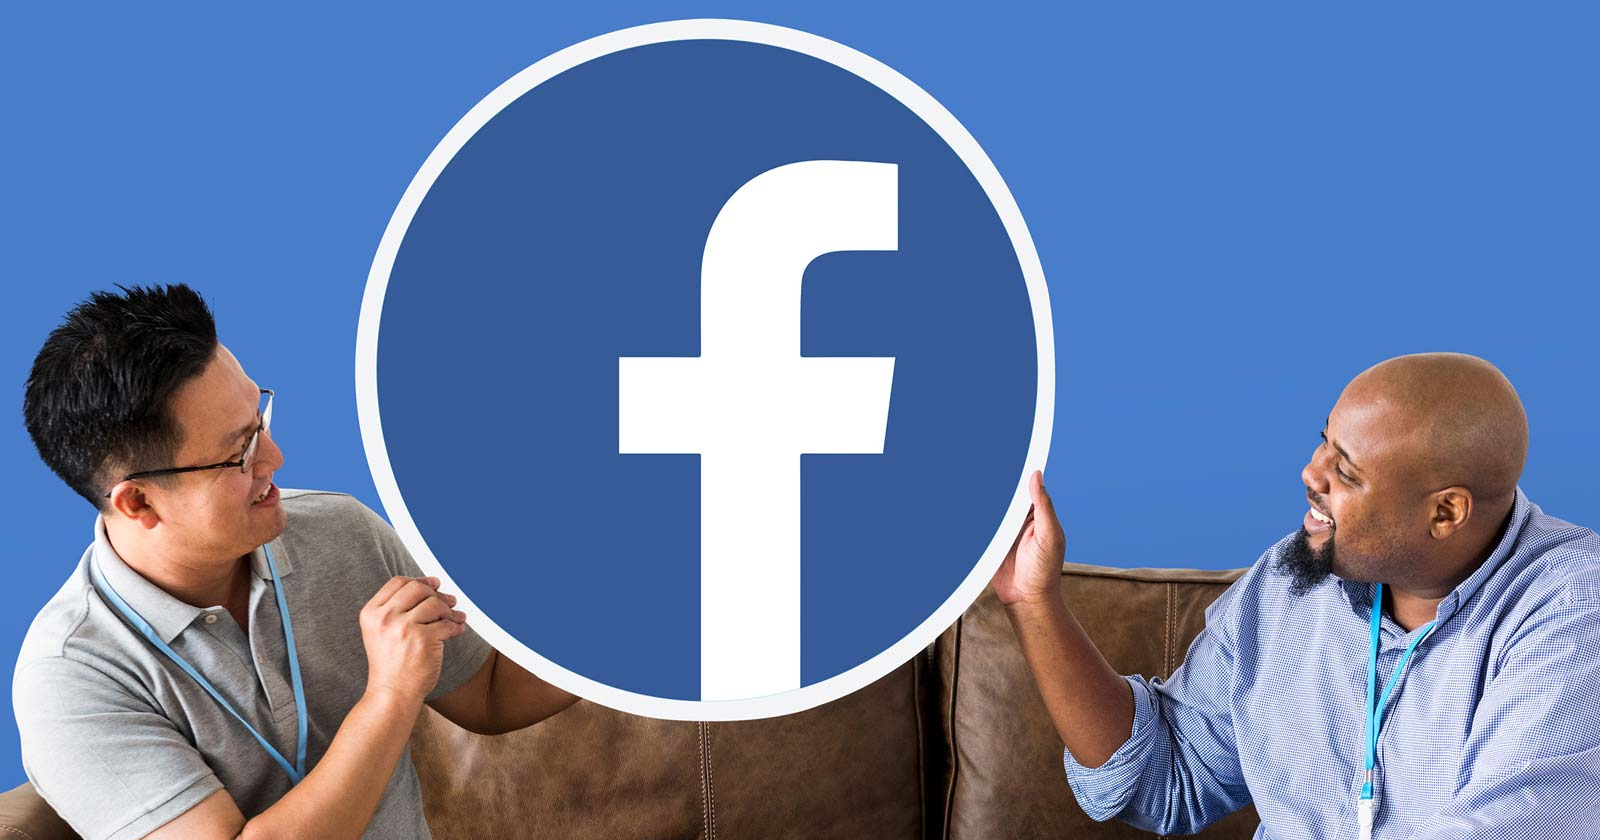 How to generate Facebook leads for insurance agents